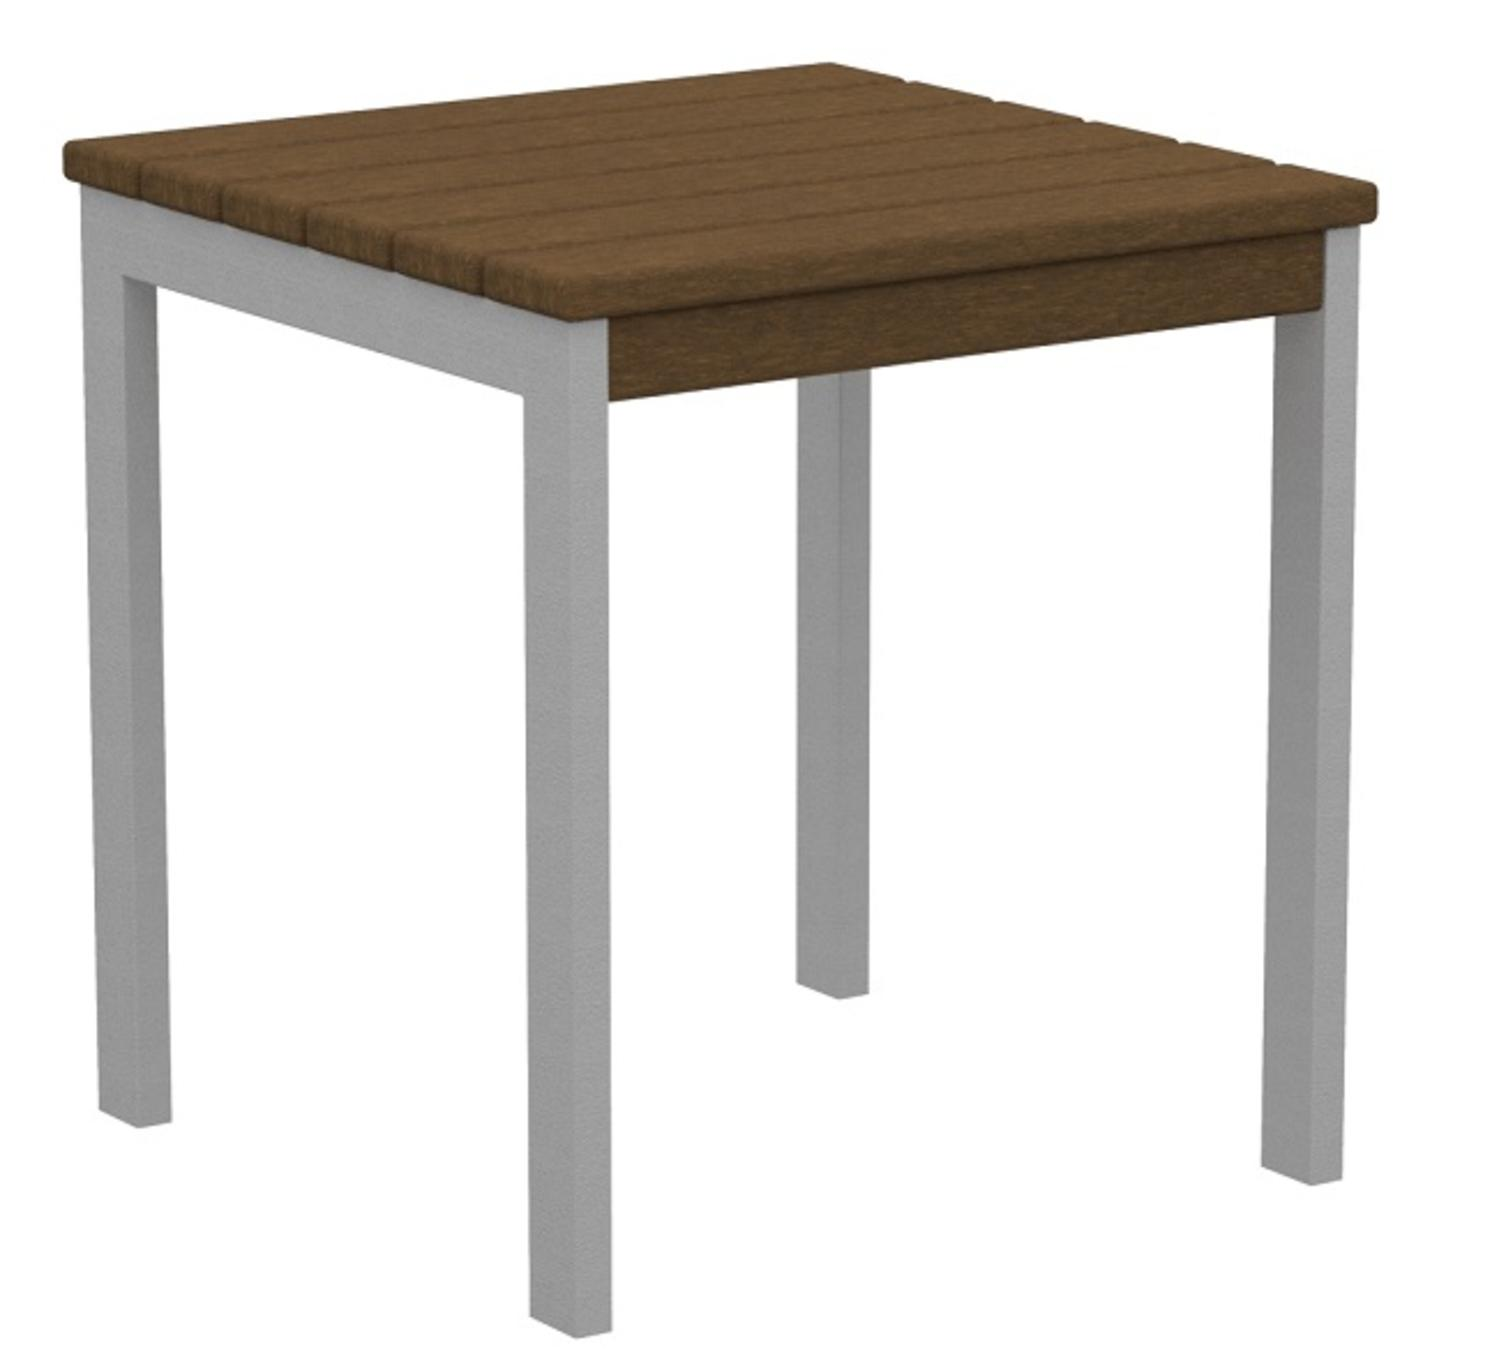 "18"" Recycled Earth-Friendly Square Side Table - Teak Brown with Silver Frame"